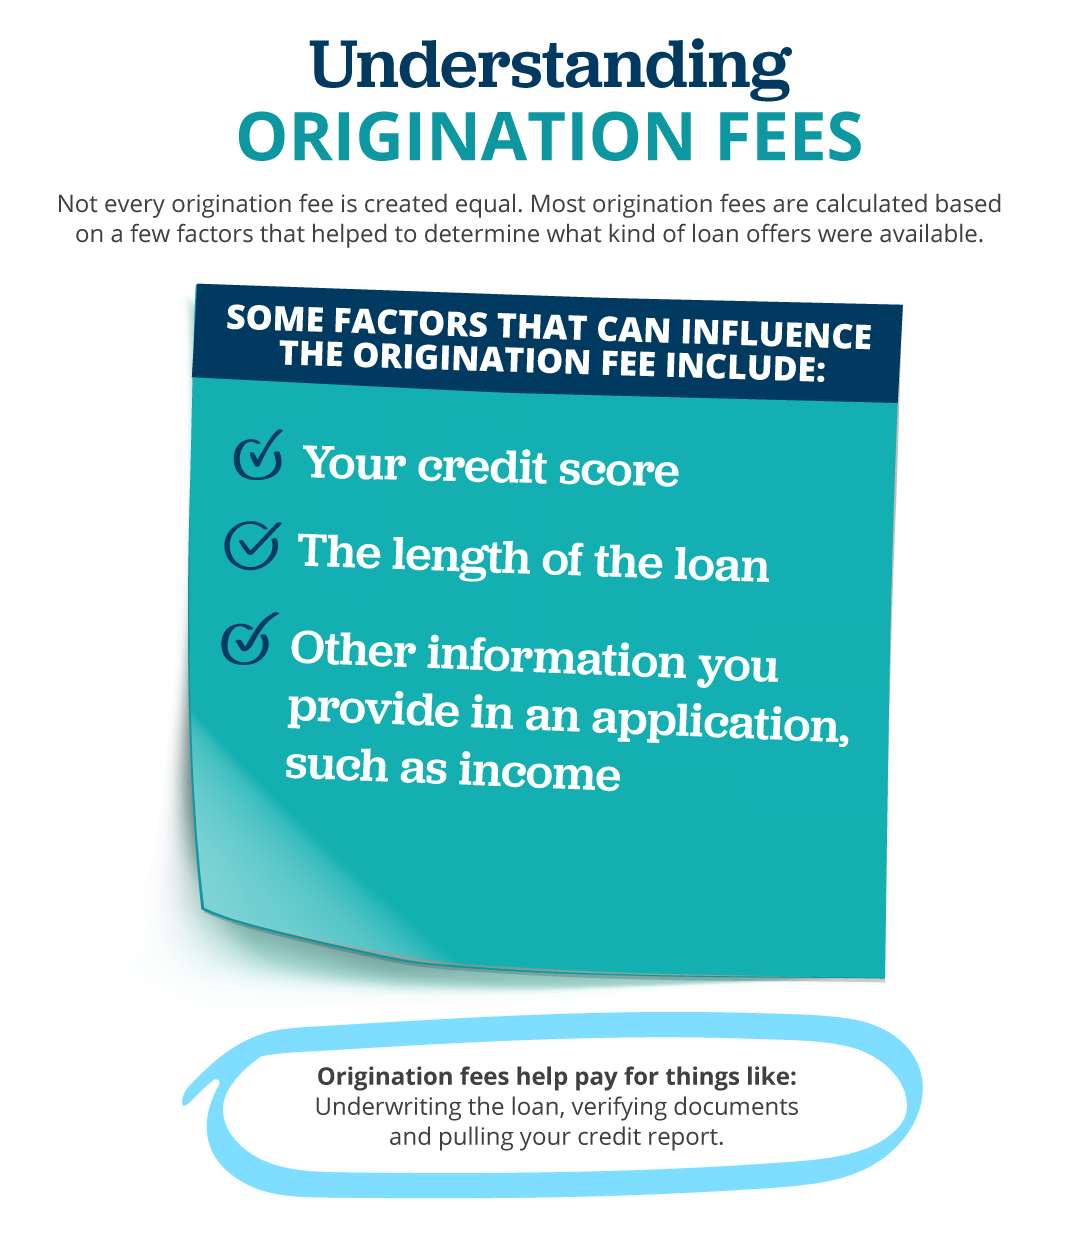 factors that can influence an origination fee